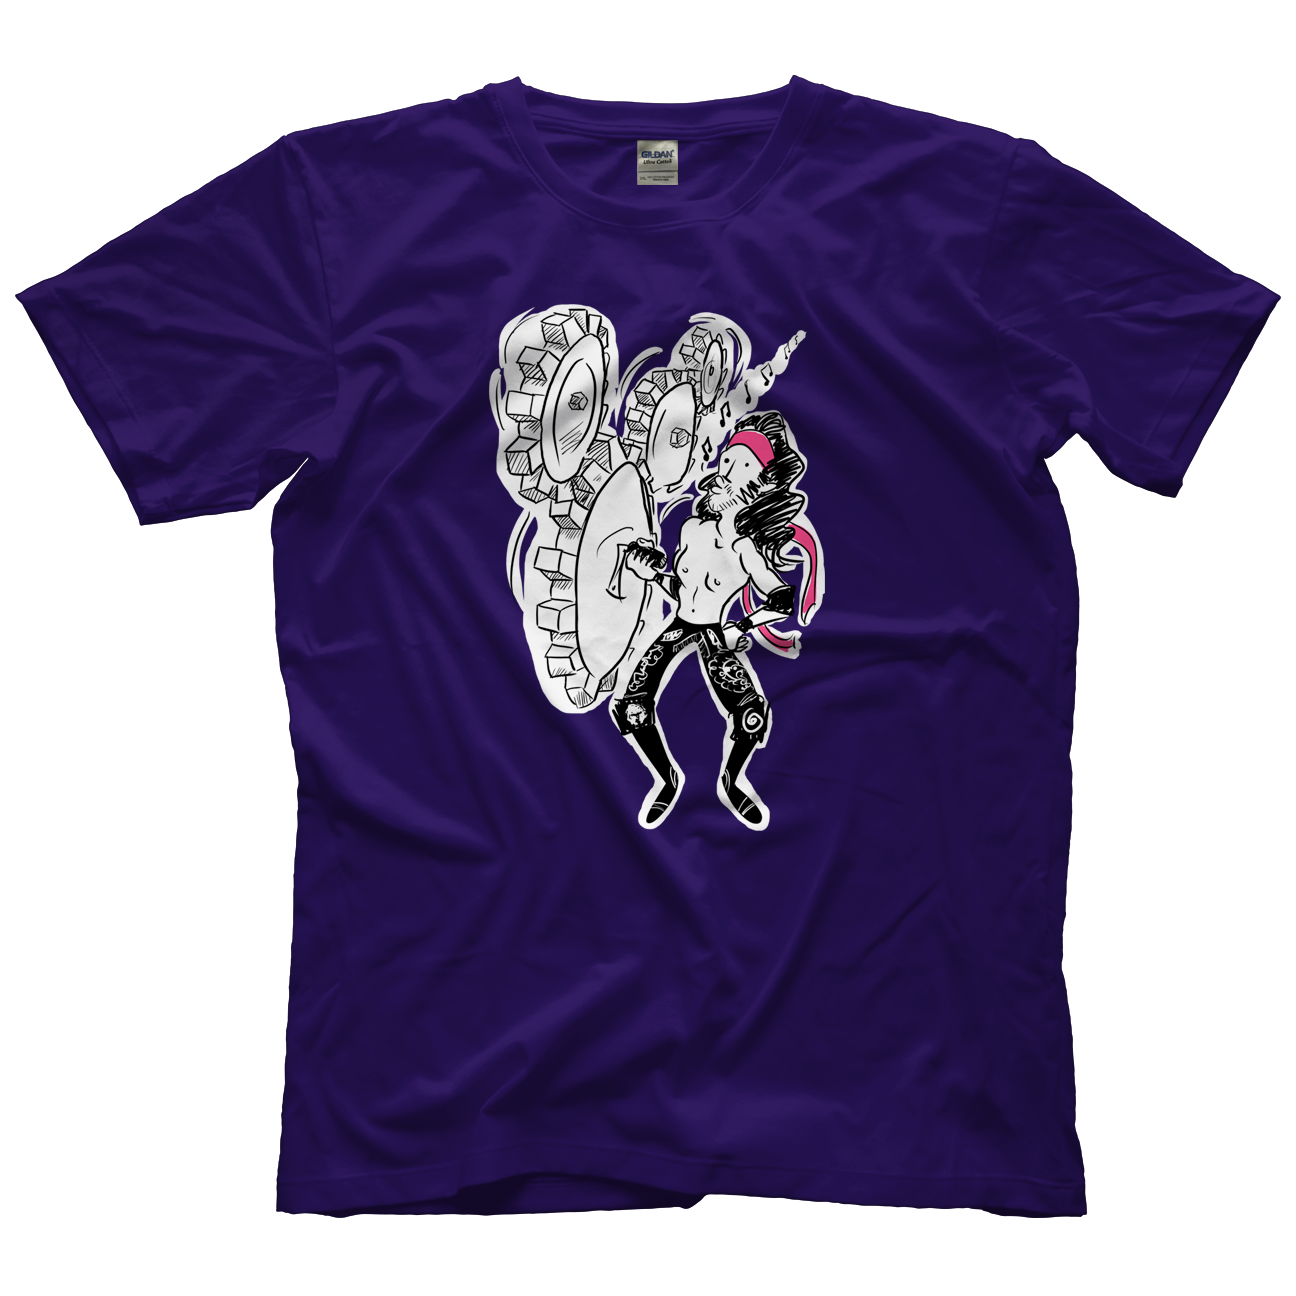 Trent Barreta Crankin It T-shirt